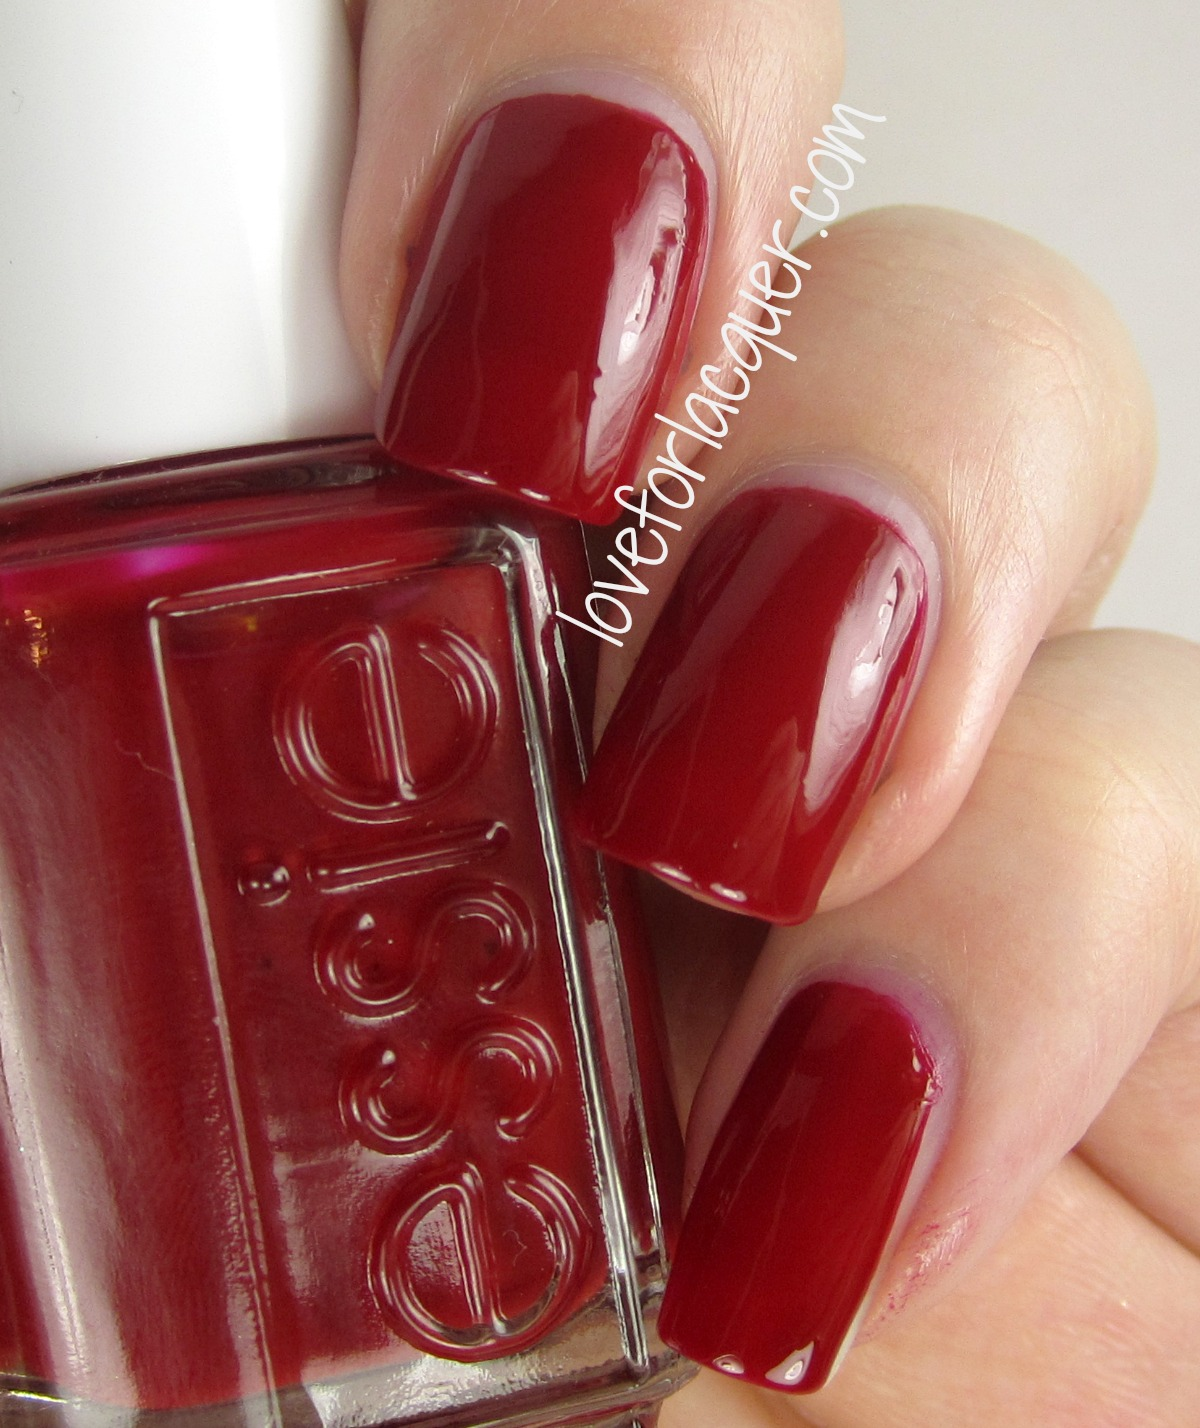 Essie Fall 2013 Collection \'For The Twill Of It\' Swatches & Review ...